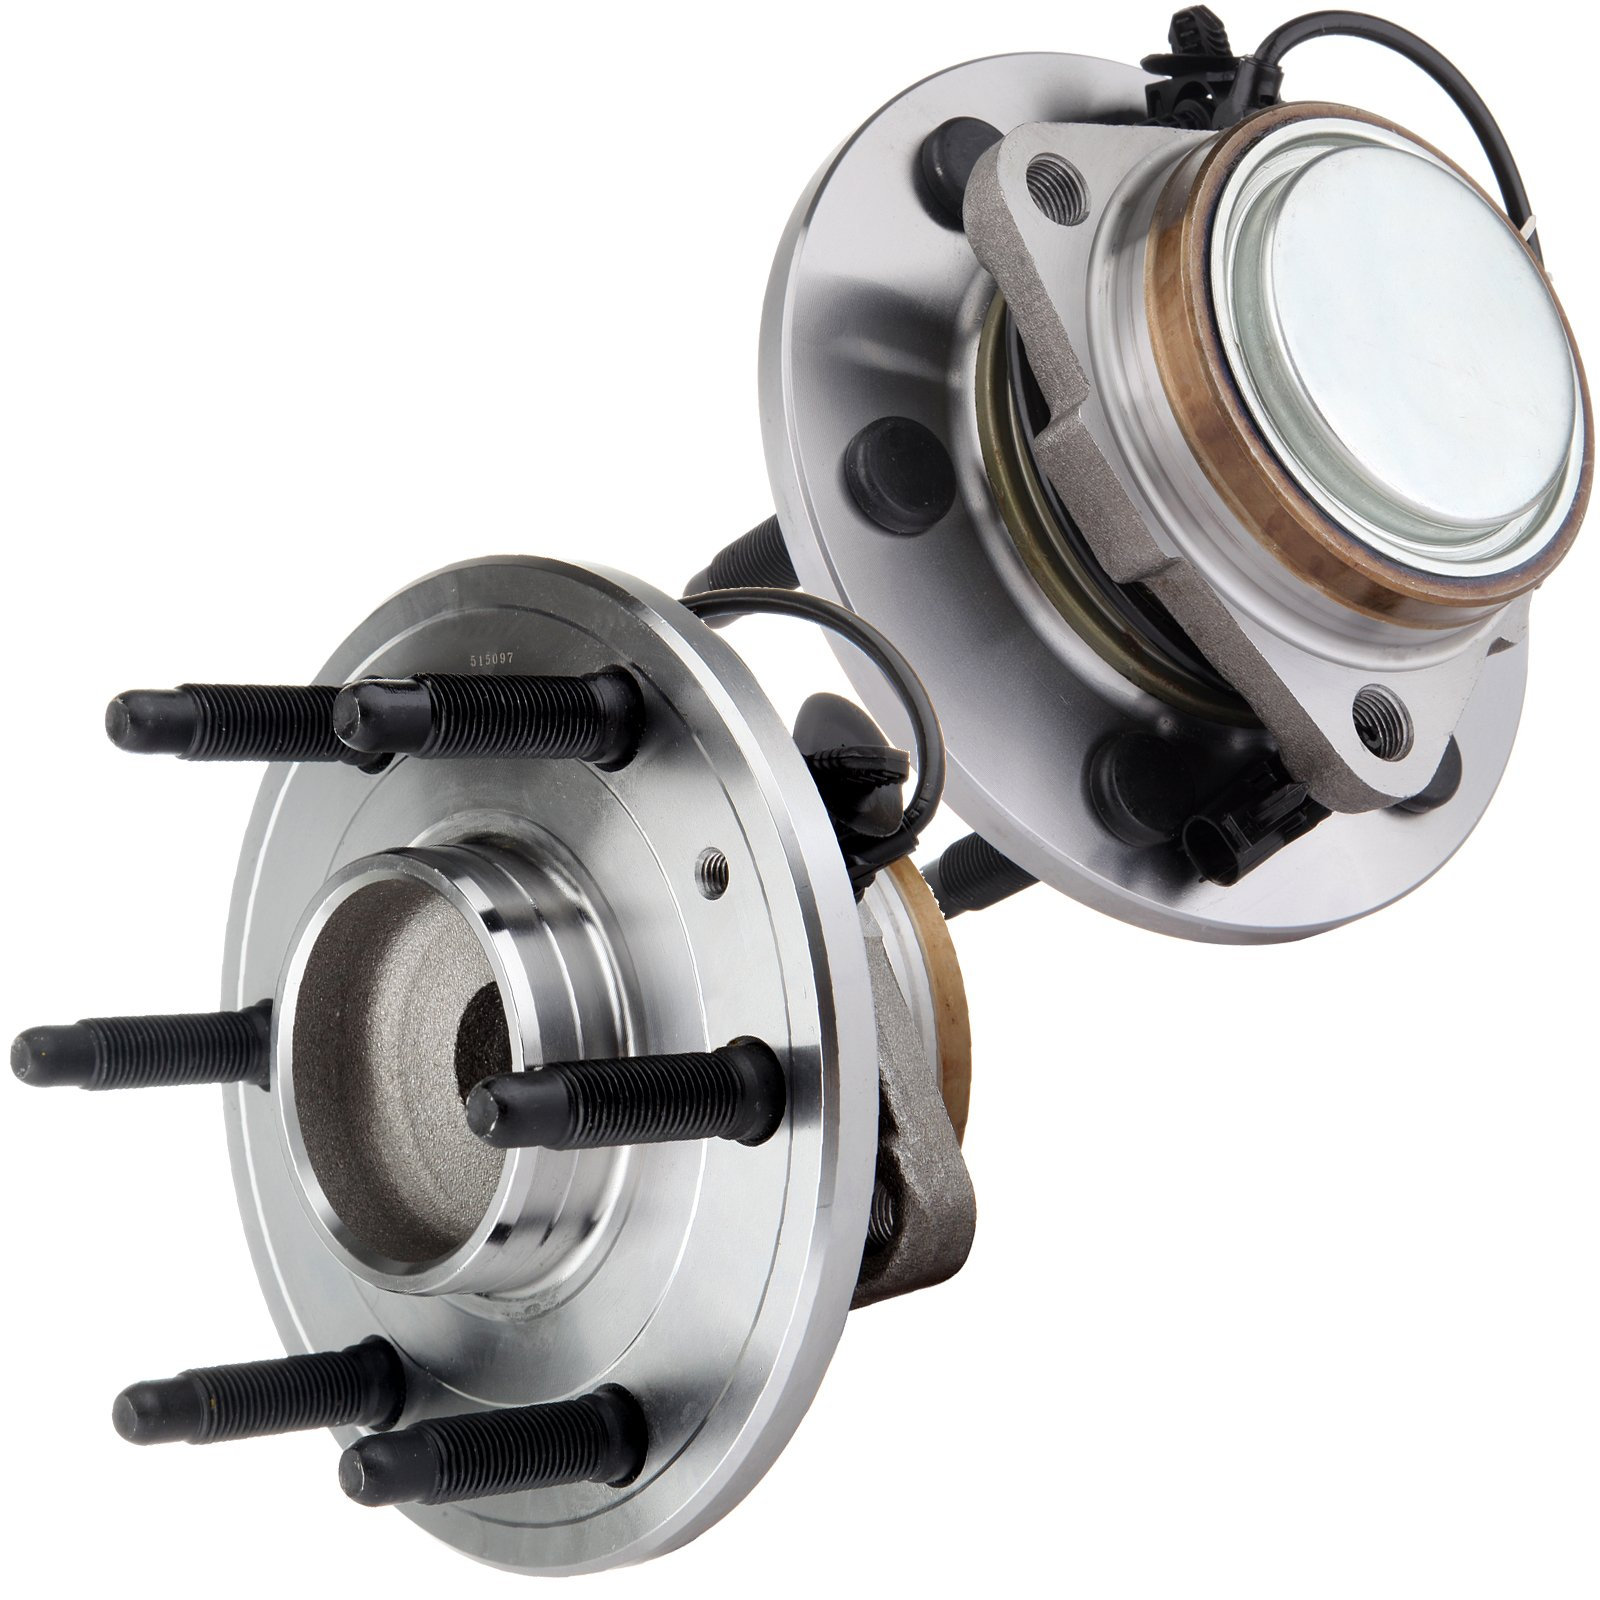 ECCPP 2 Front Wheel Hub Bearing Assembly For Suburban 1500 07-14 Tahoe 07-13 6 Lug-ABS by ECCPP